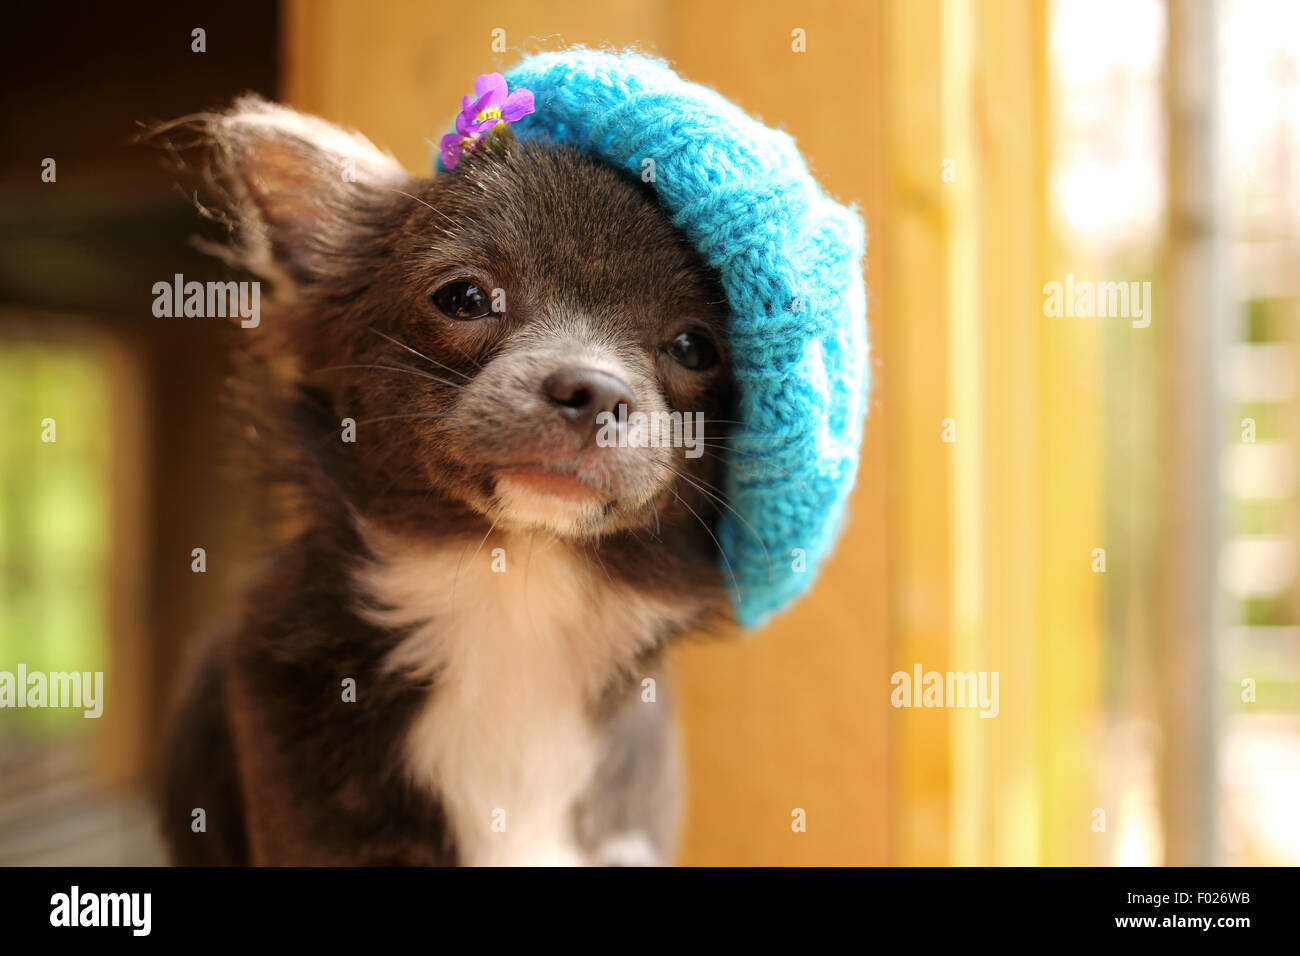 Chihuahua puppy wearing knitted hat - Stock Image